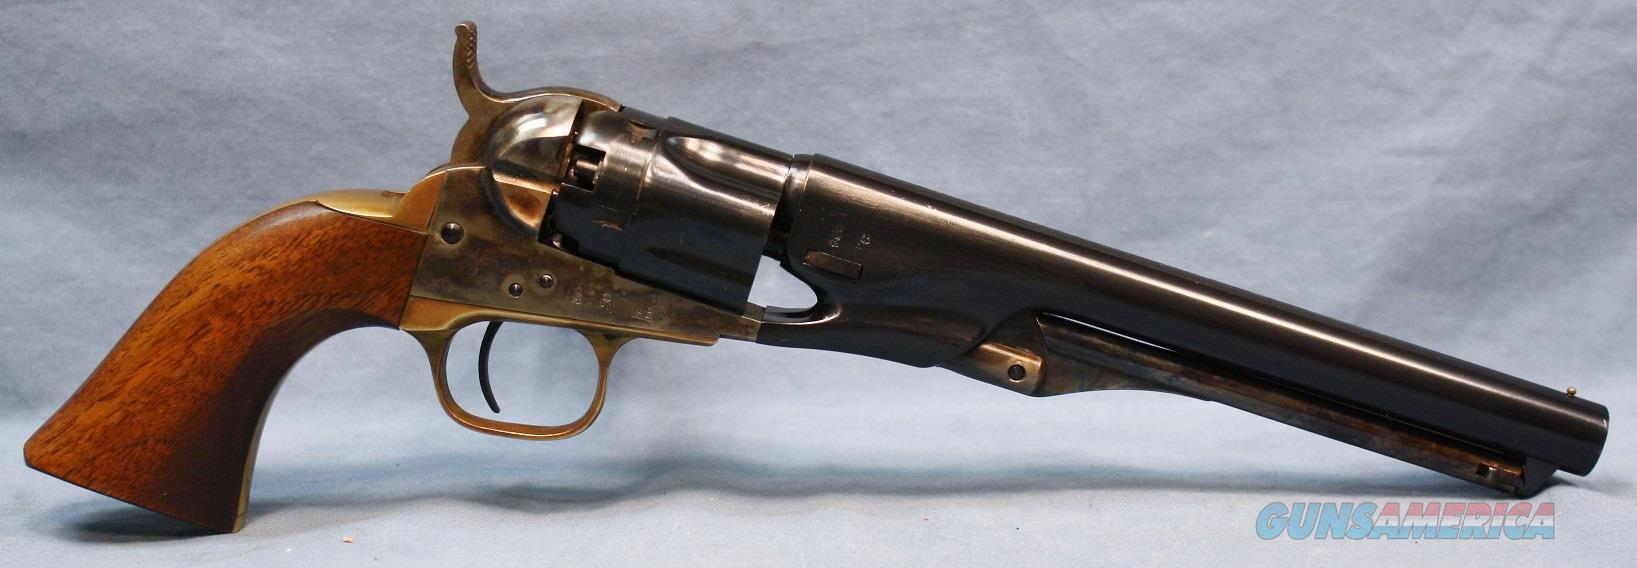 Uberti Model 1862 Pocket Police Single Action Blackpowder Percussion Revolver, .36 Caliber   Guns > Pistols > Uberti Pistols > Percussion